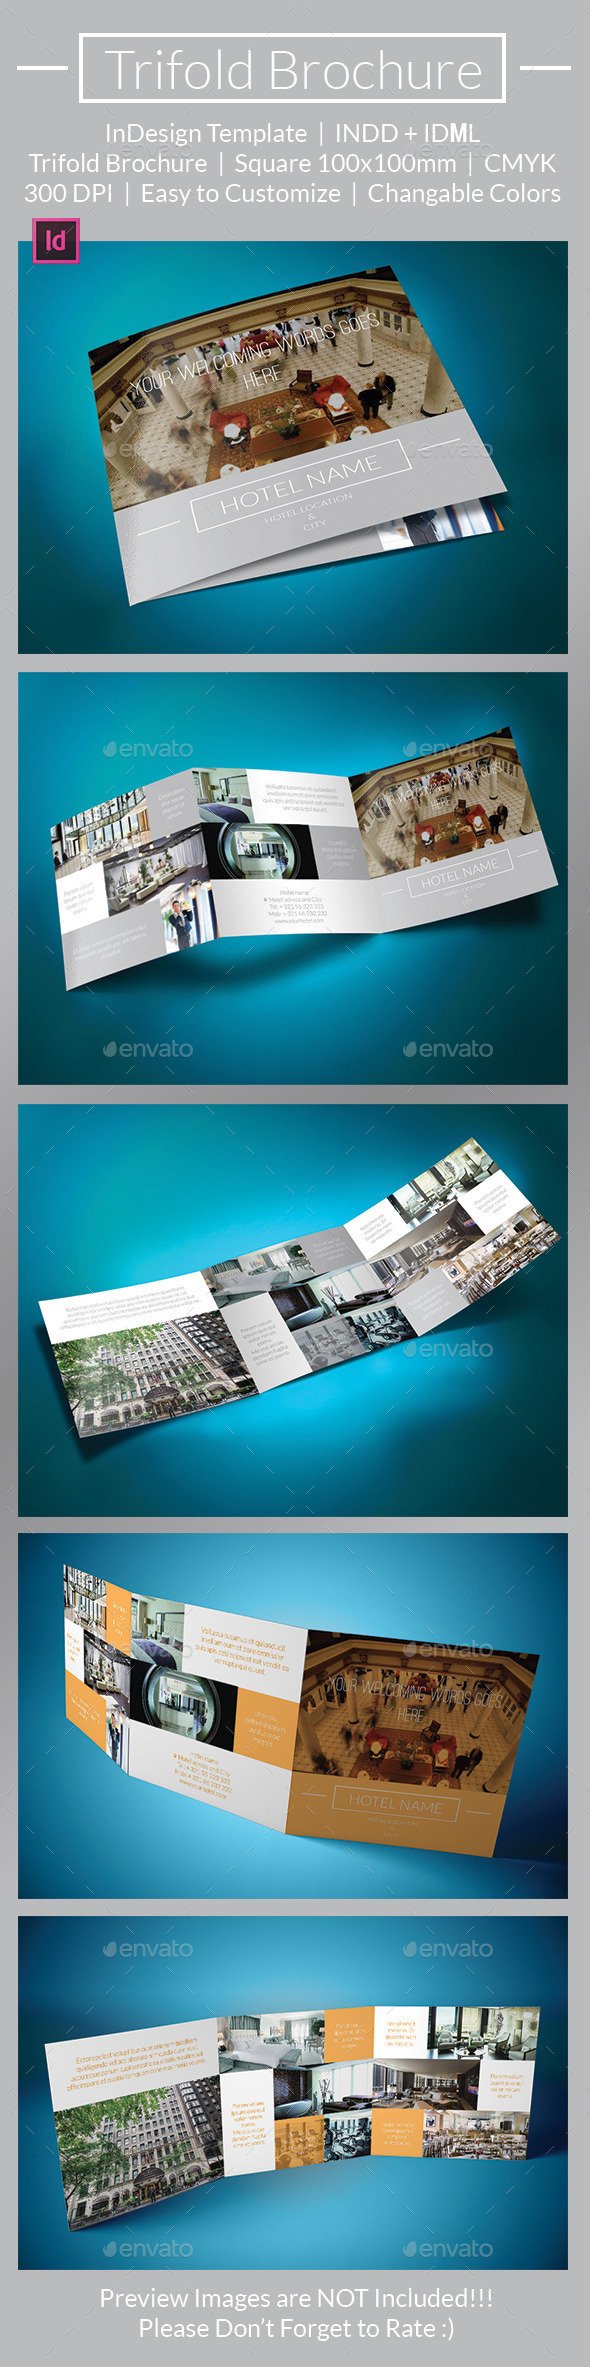 Hotel Metro Trifold Brochure - Brochures Print Templates